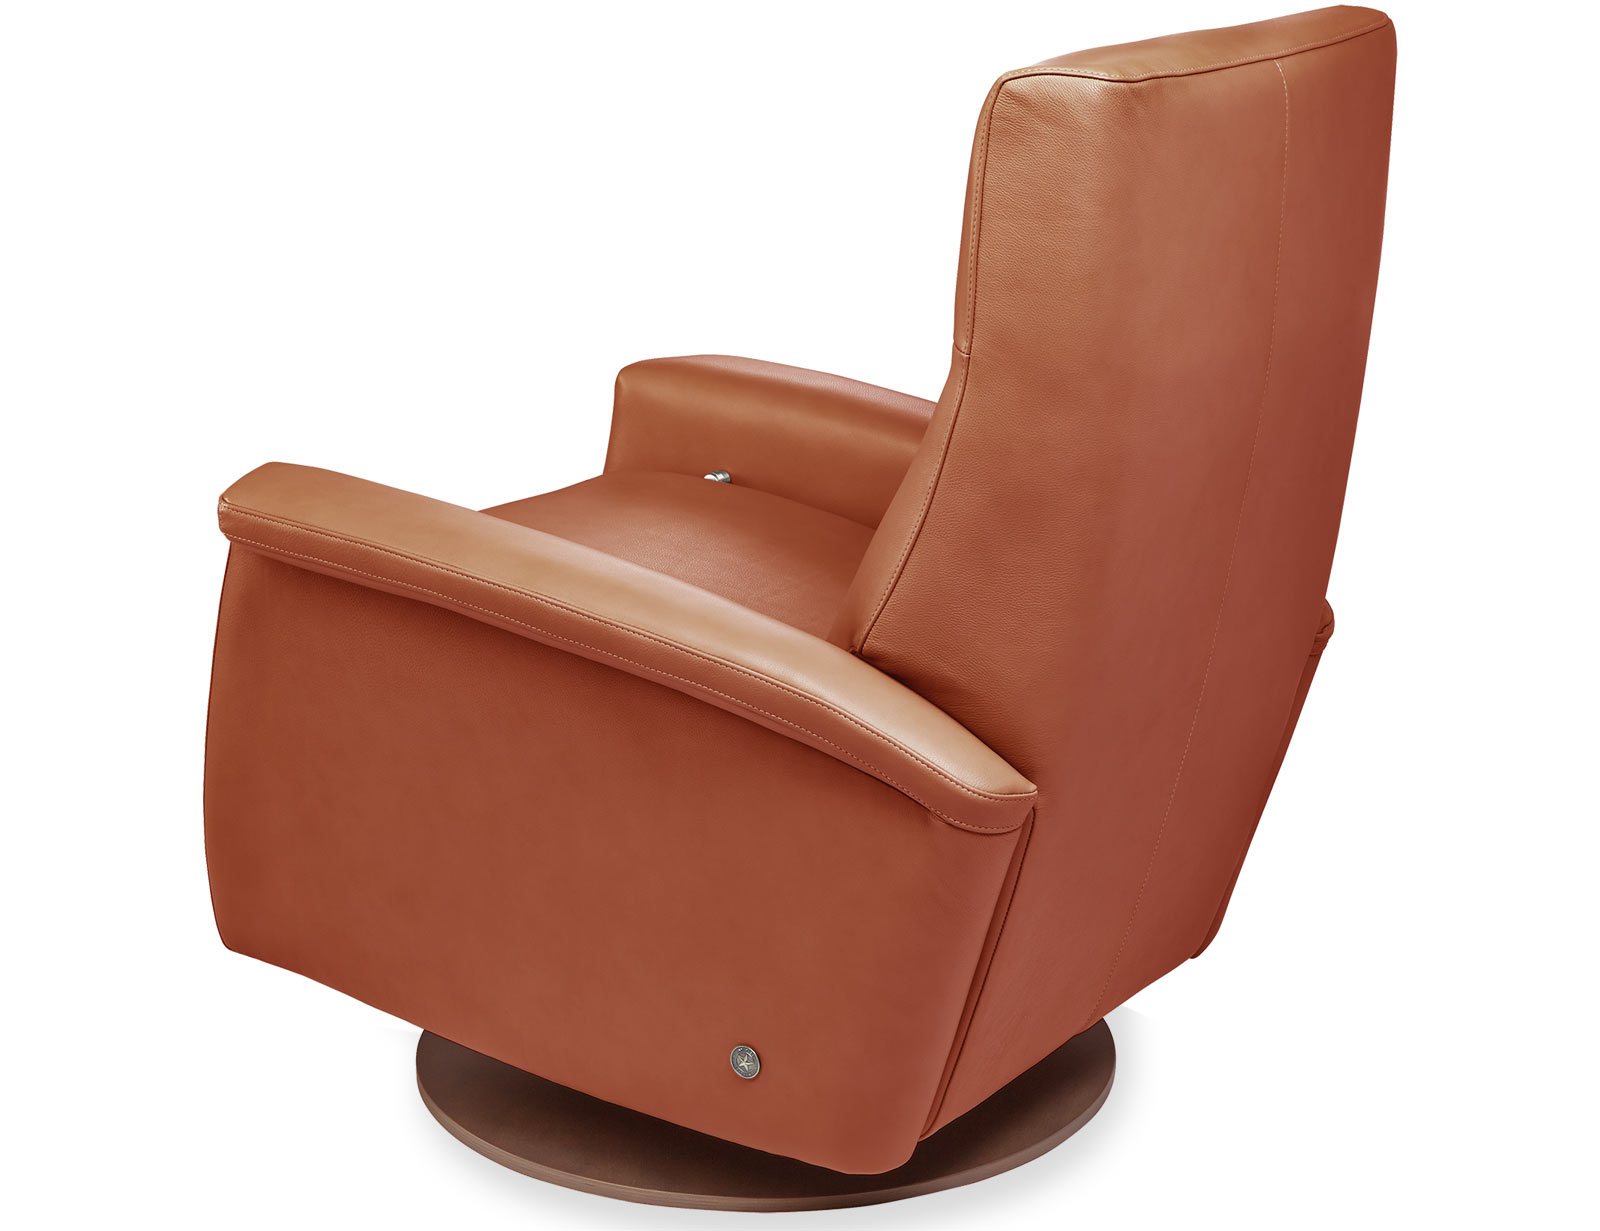 American Leather Fallon Comfort Recliner available with swivel base